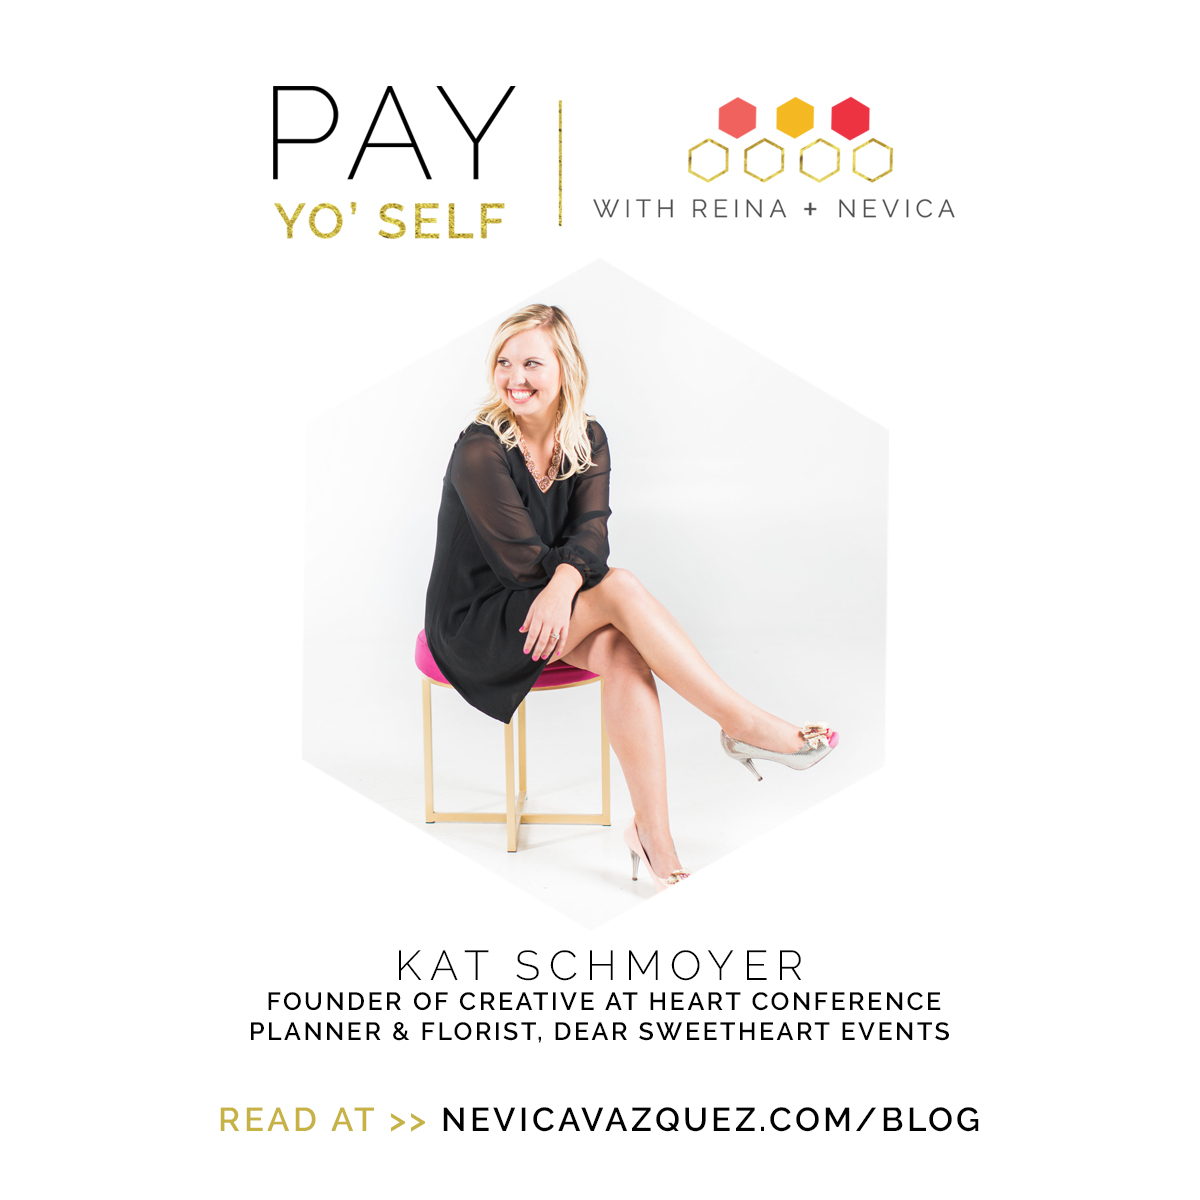 Pay Yo' Self Series – Dear Sweetheart Events